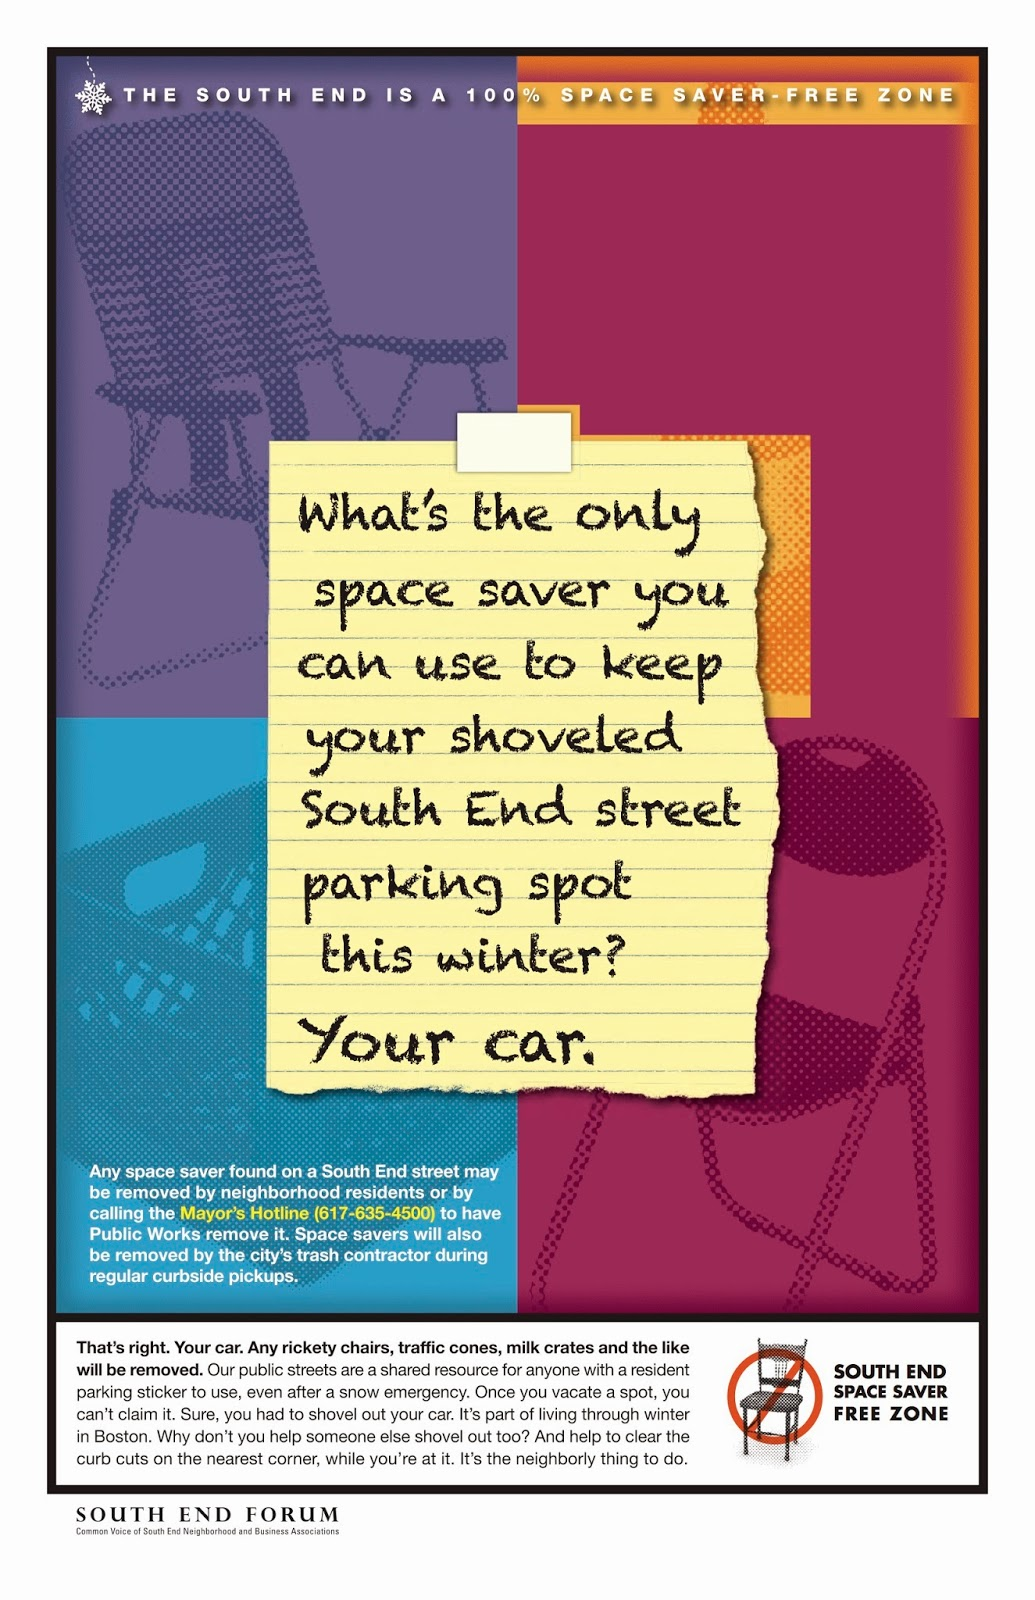 A poster discourages the practice of using space savers to save a parking spot in the winter in a Boston neighborhood.